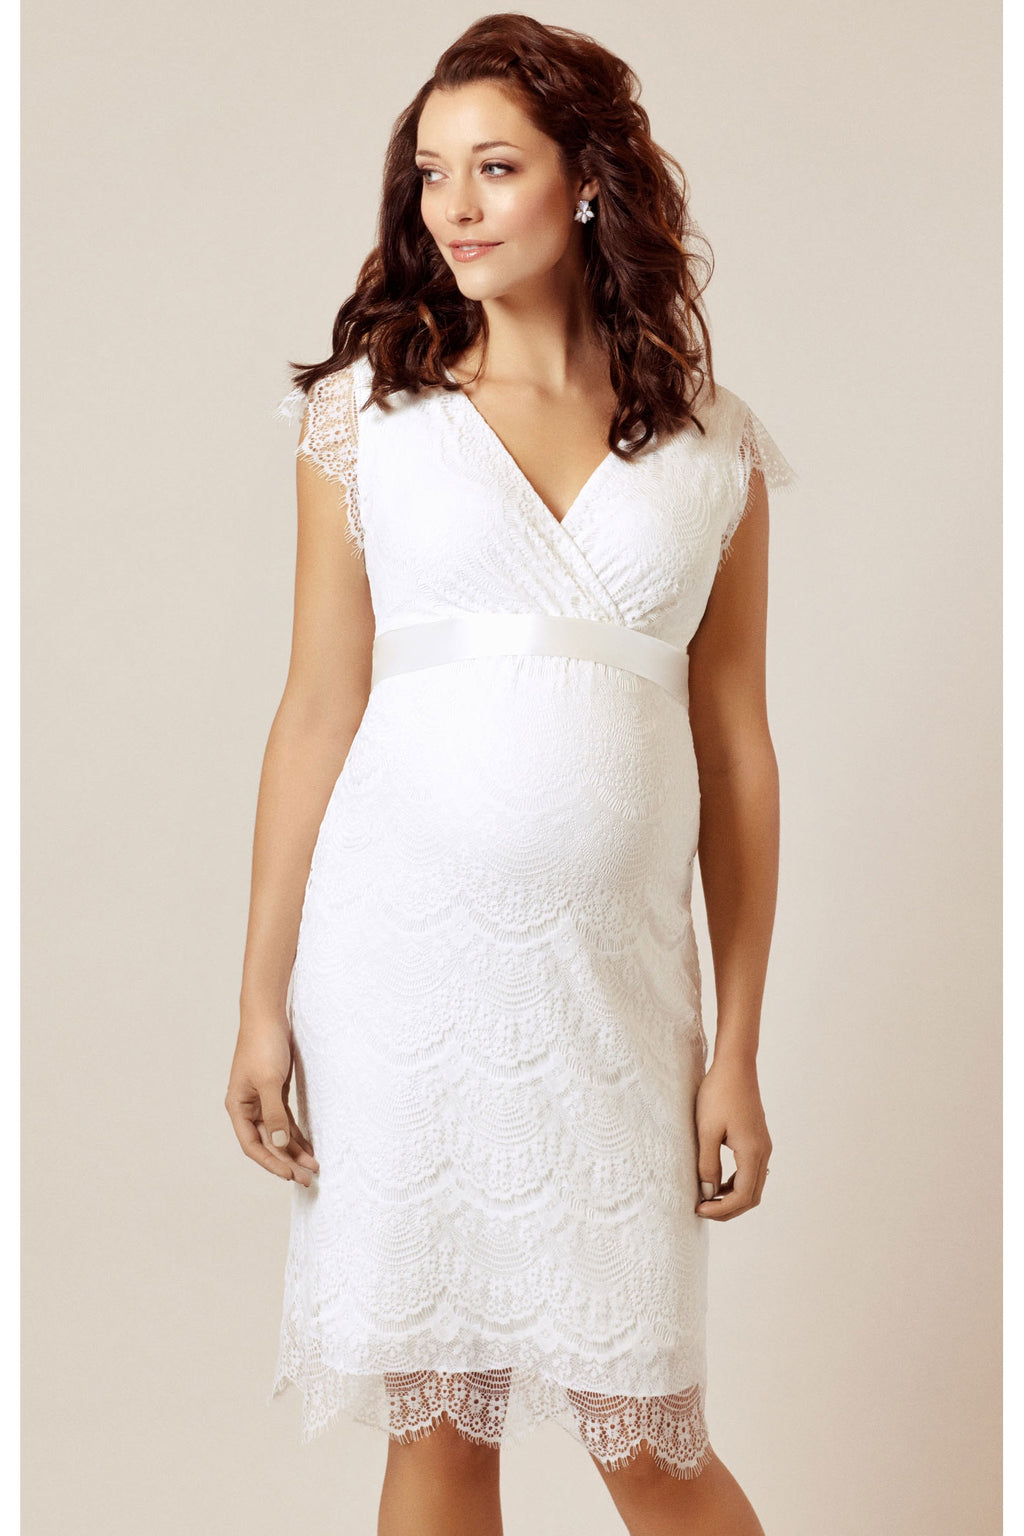 Tiffany Rose Imogen Bridal Shift Dress in Ivory - Seven Women Maternity